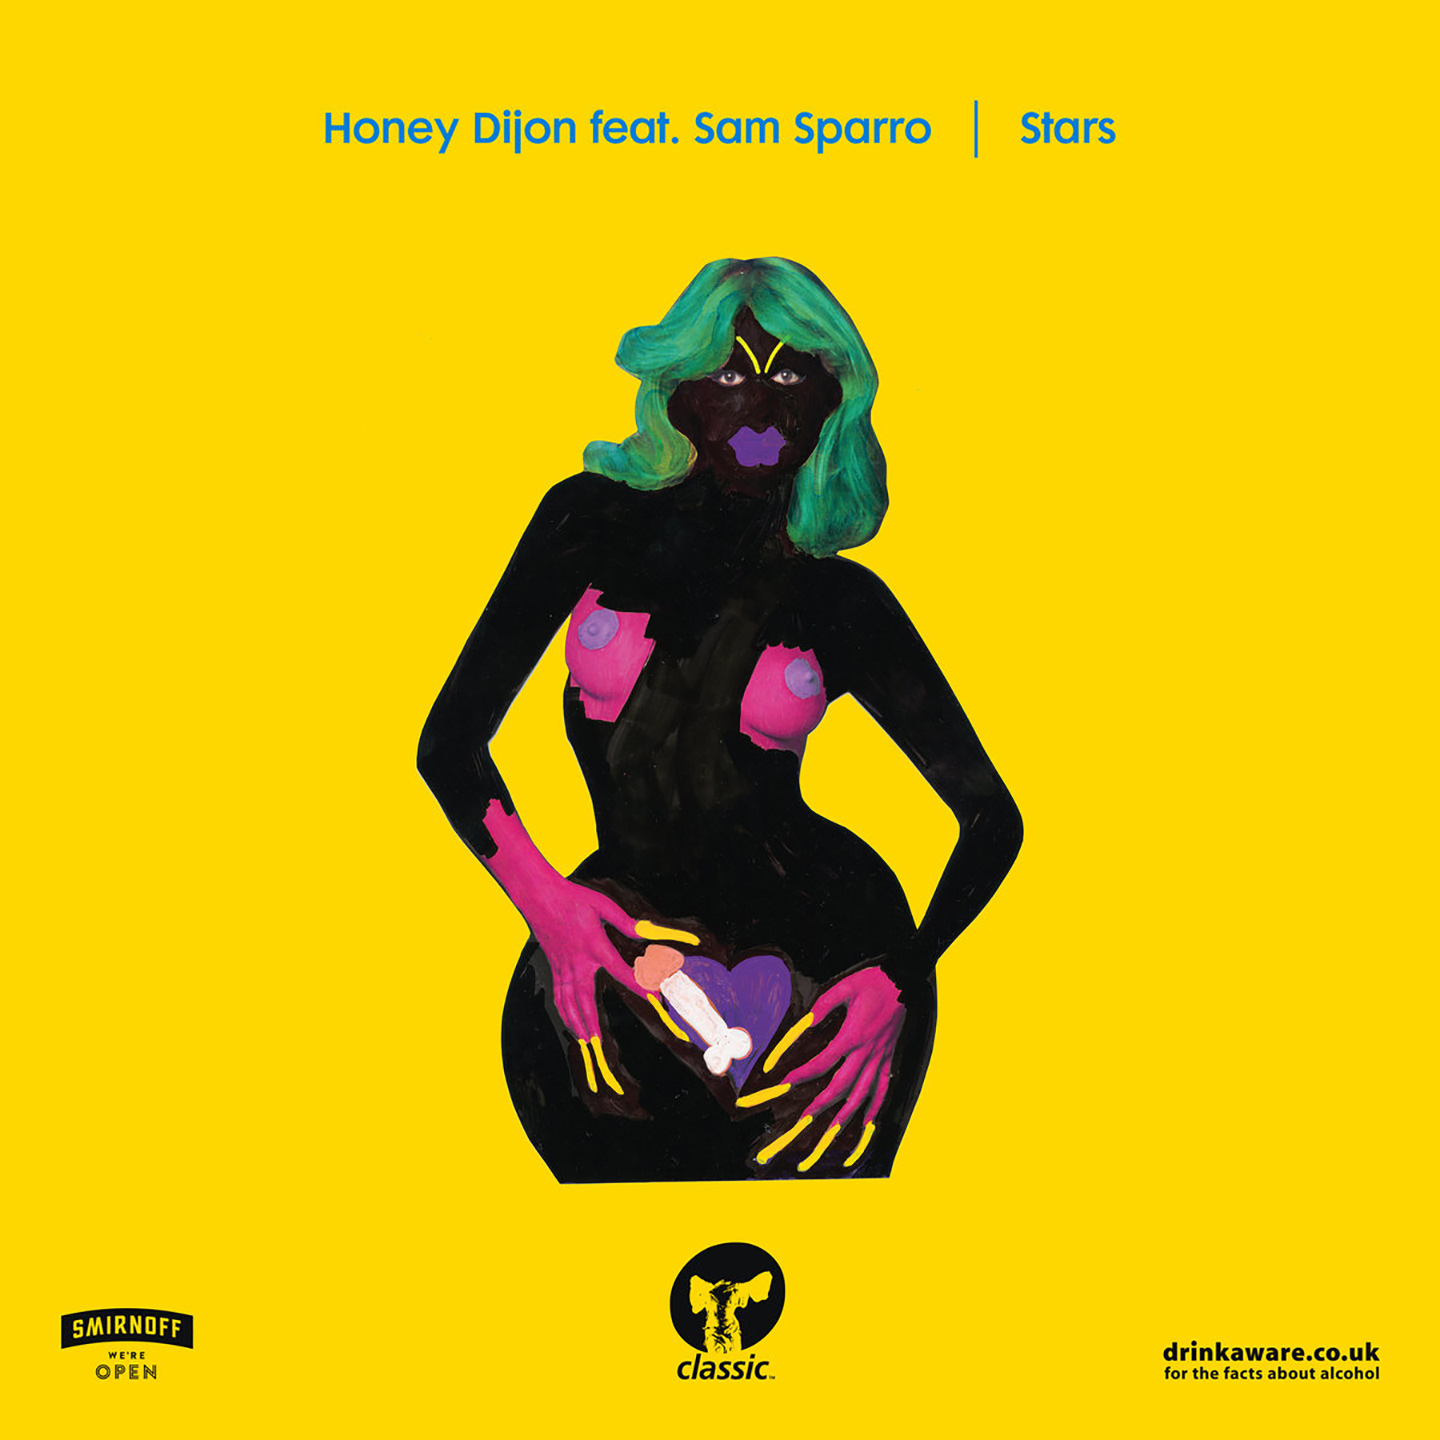 Honey Dijon - Stars feat. Sam Sparro